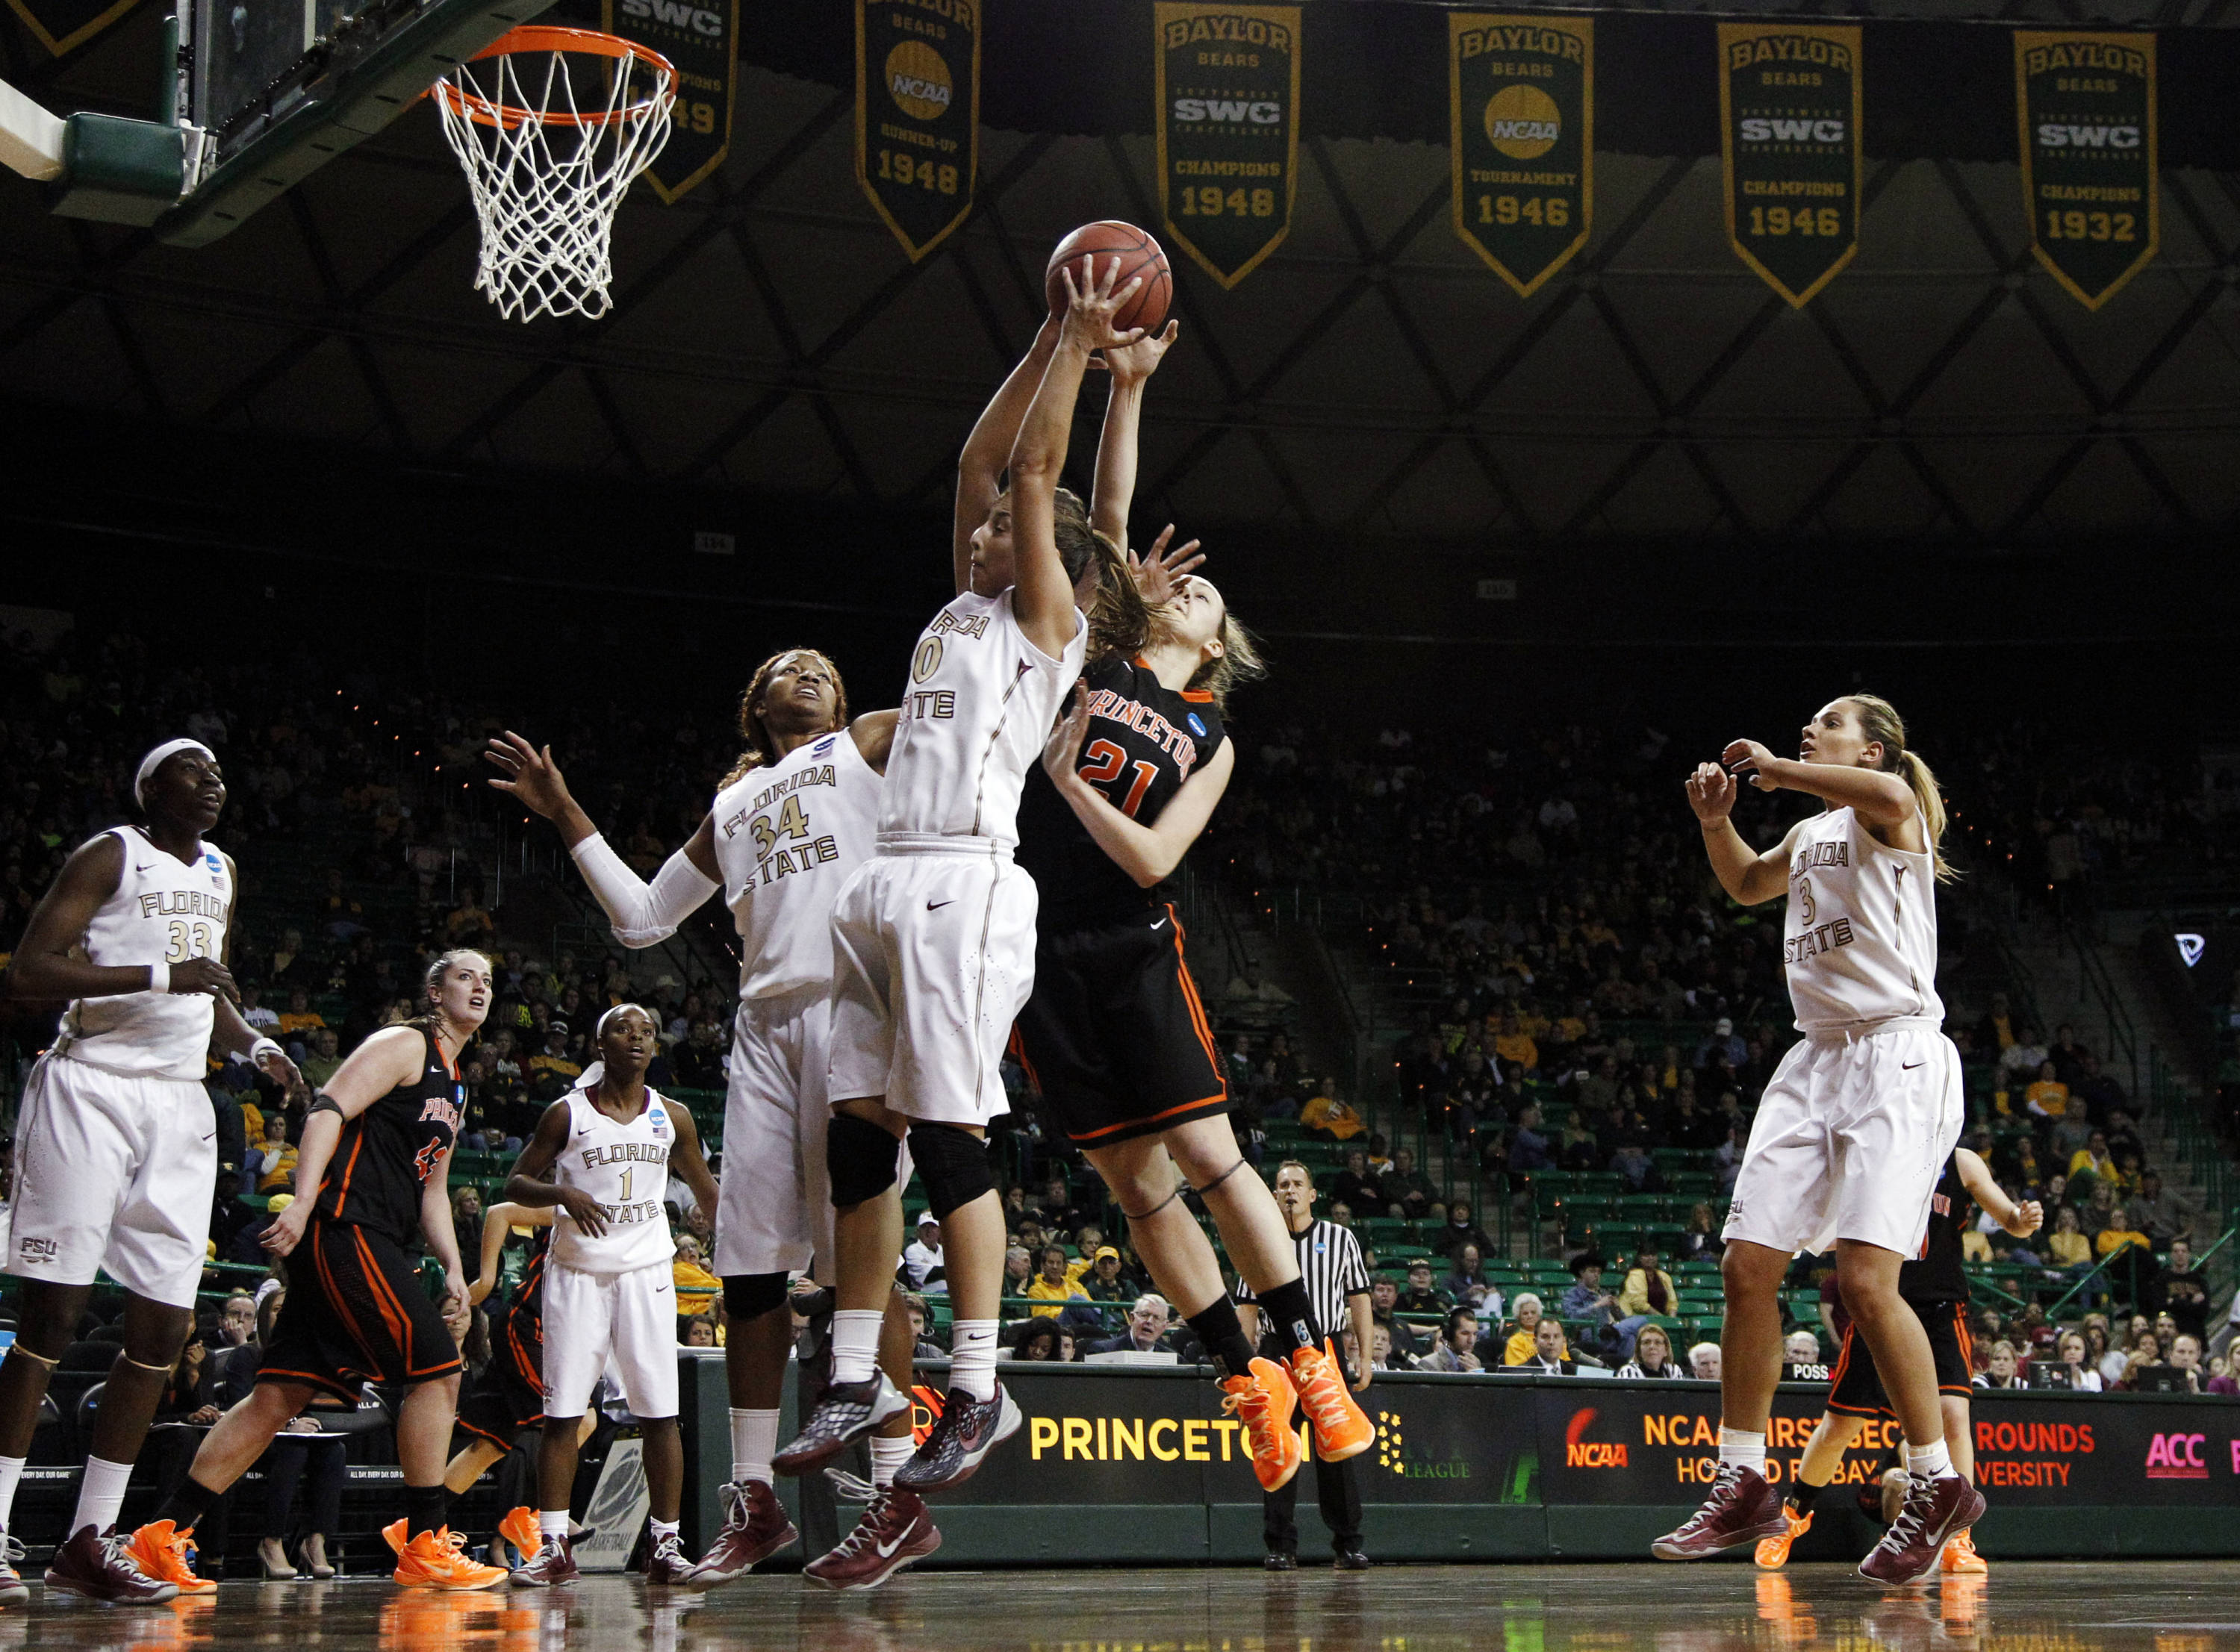 Florida State's Chelsea Davis (34) and Leonor Rodriguez, center left, combine to grab a rebound in front of Princeton's Alex Wheatley (21) in the second half. (AP Photo/Tony Gutierrez)